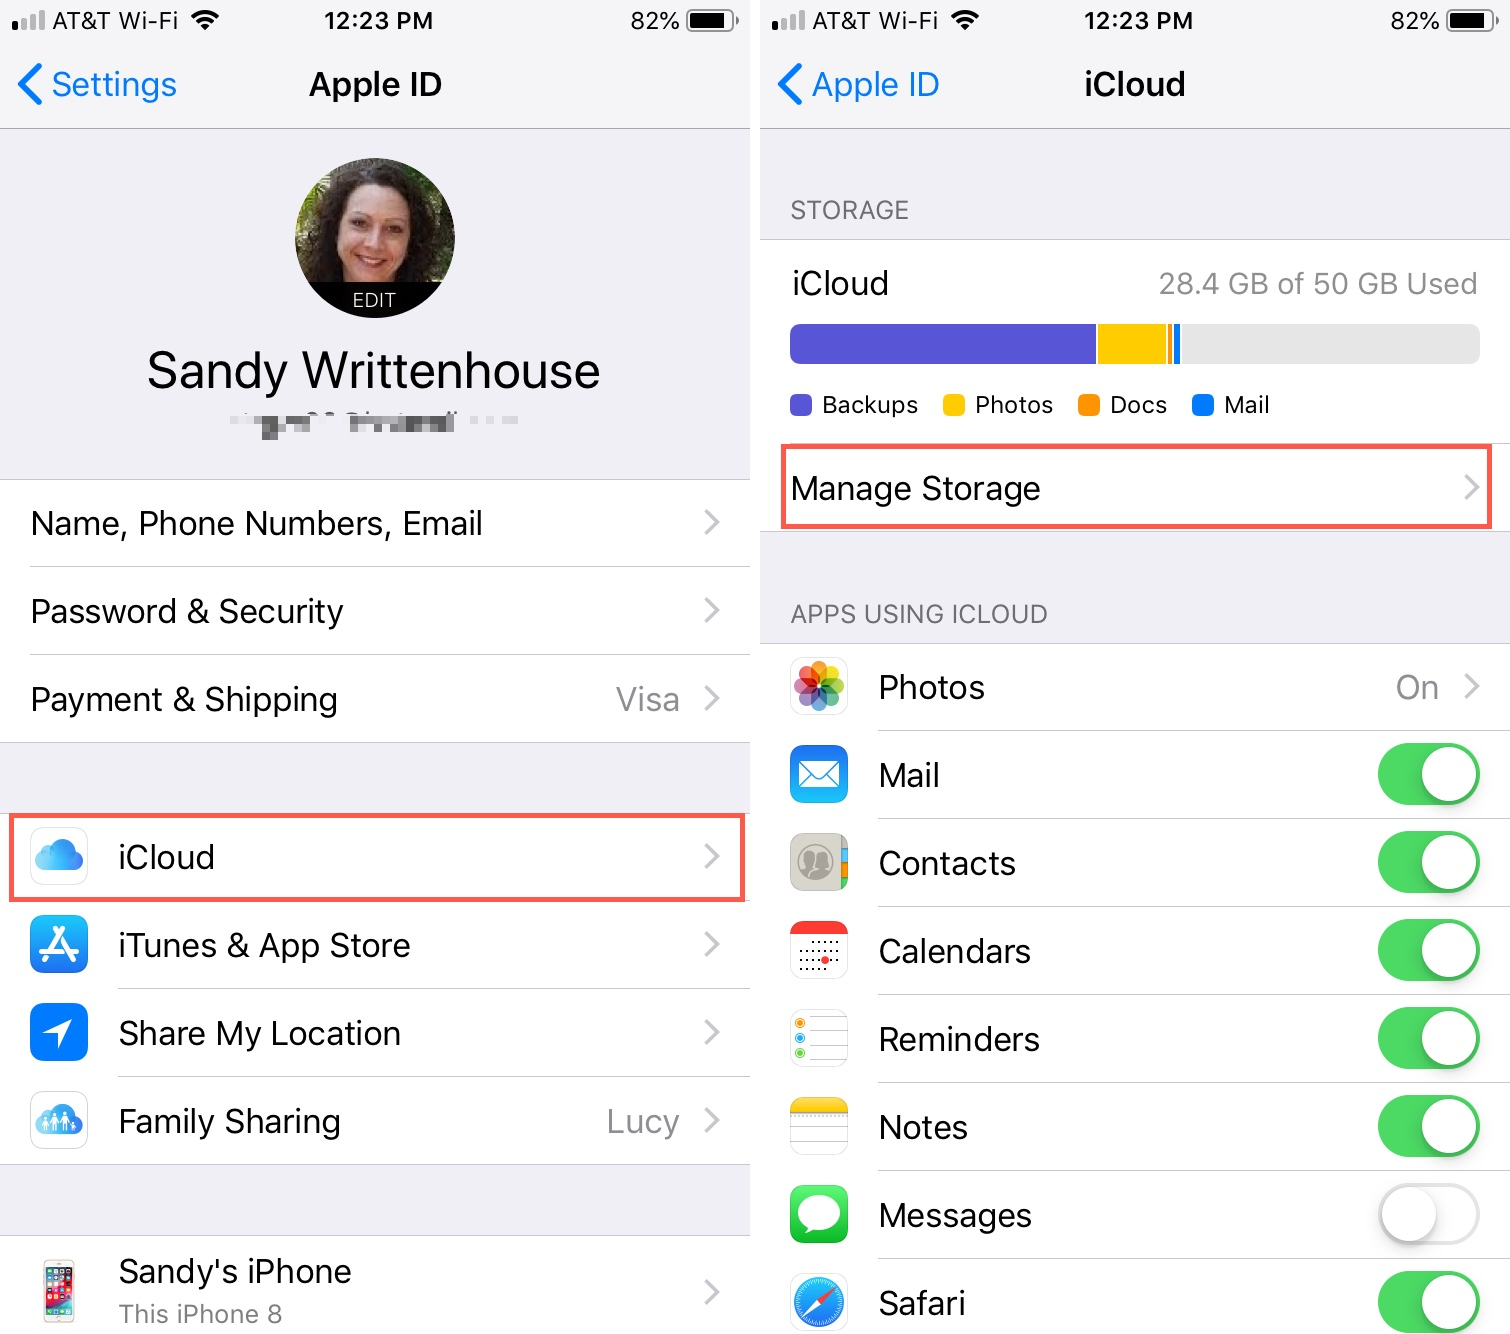 Settings iCloud Manage Storage on iPhone